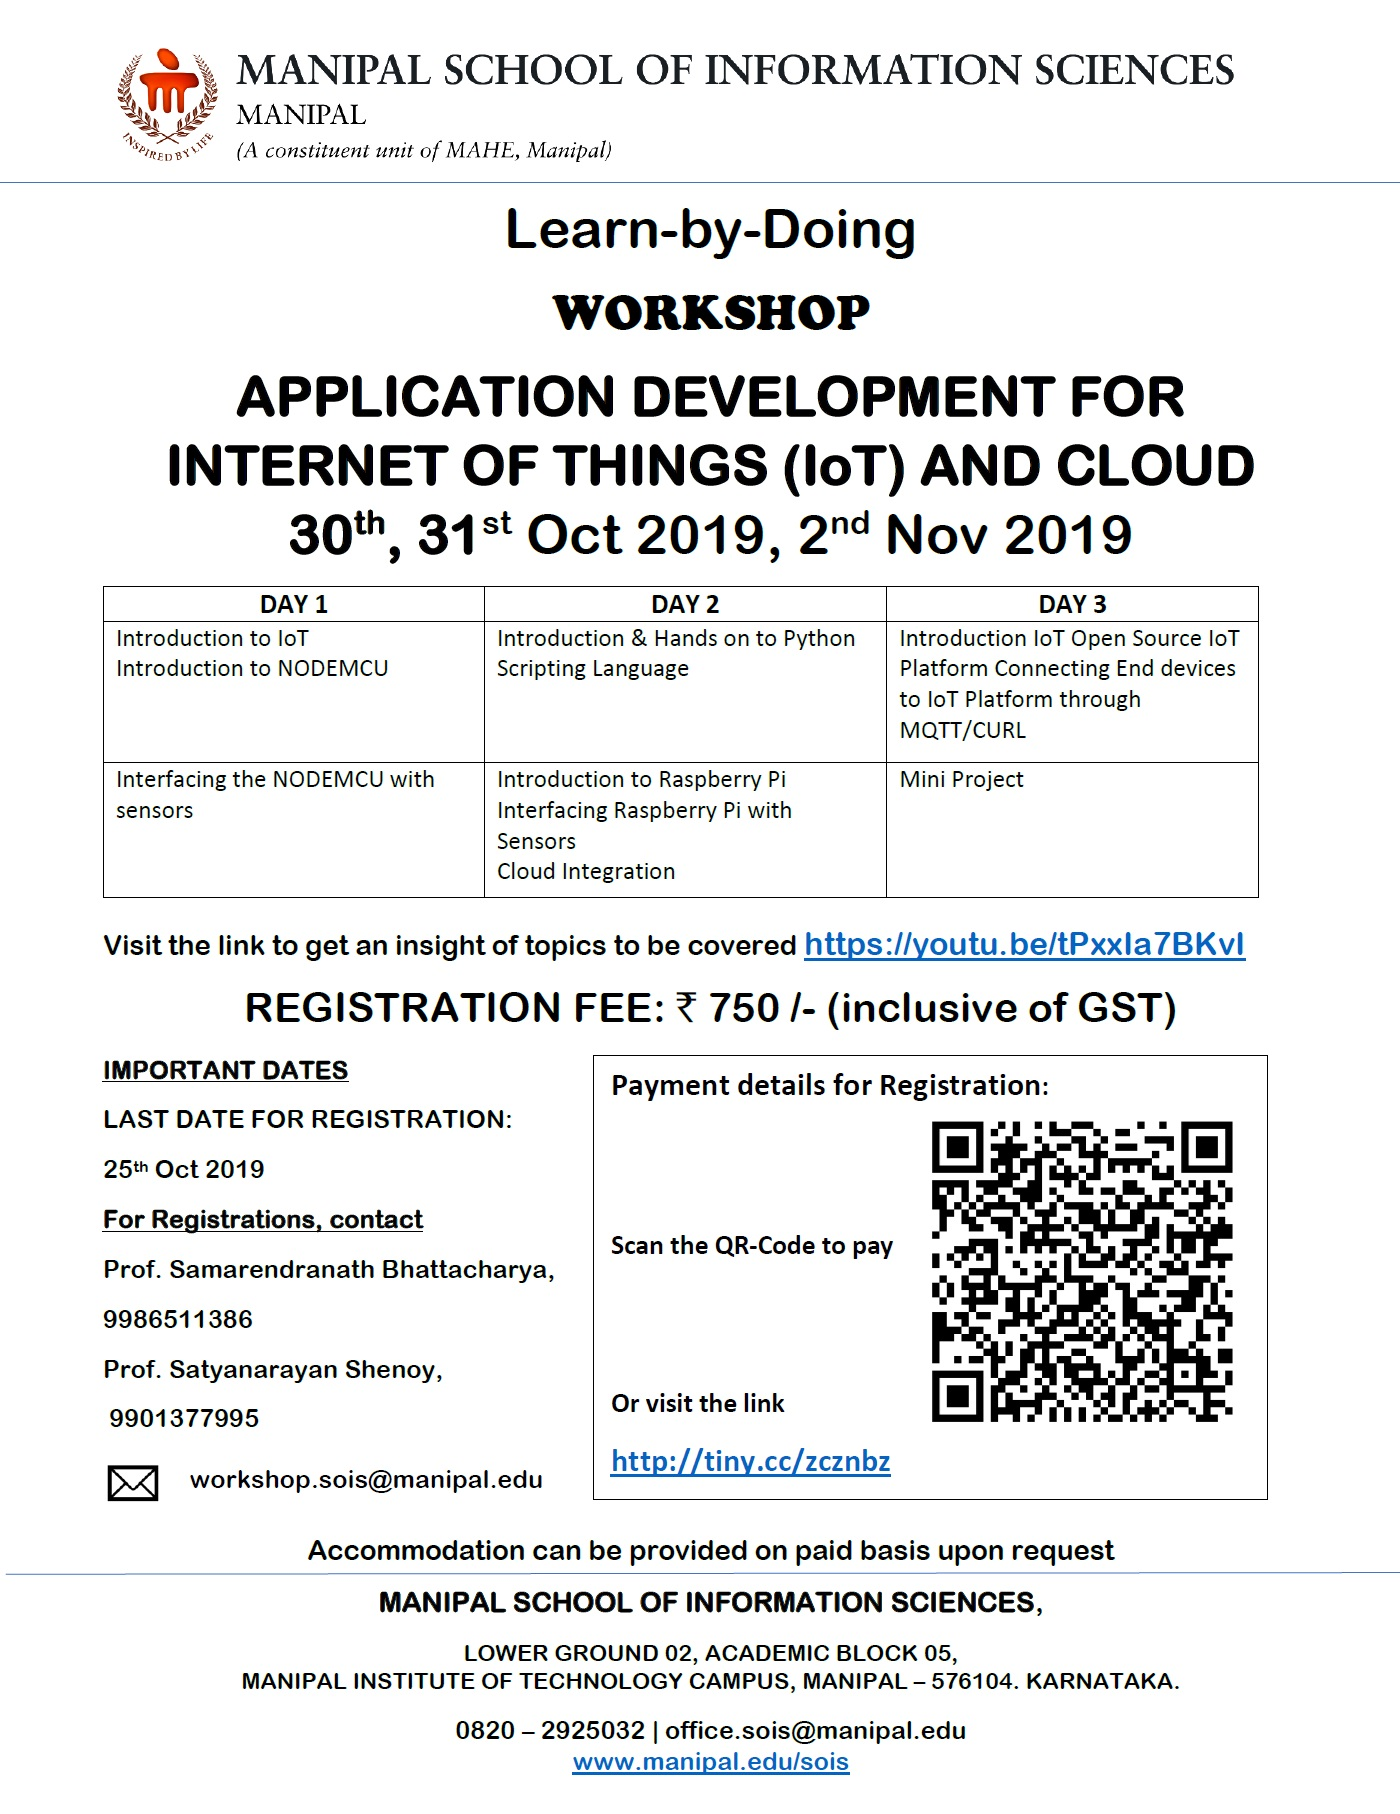 Lear-by-Doing Workshop on Application Development for IoT and Cloud using Raspberry Pi 2019